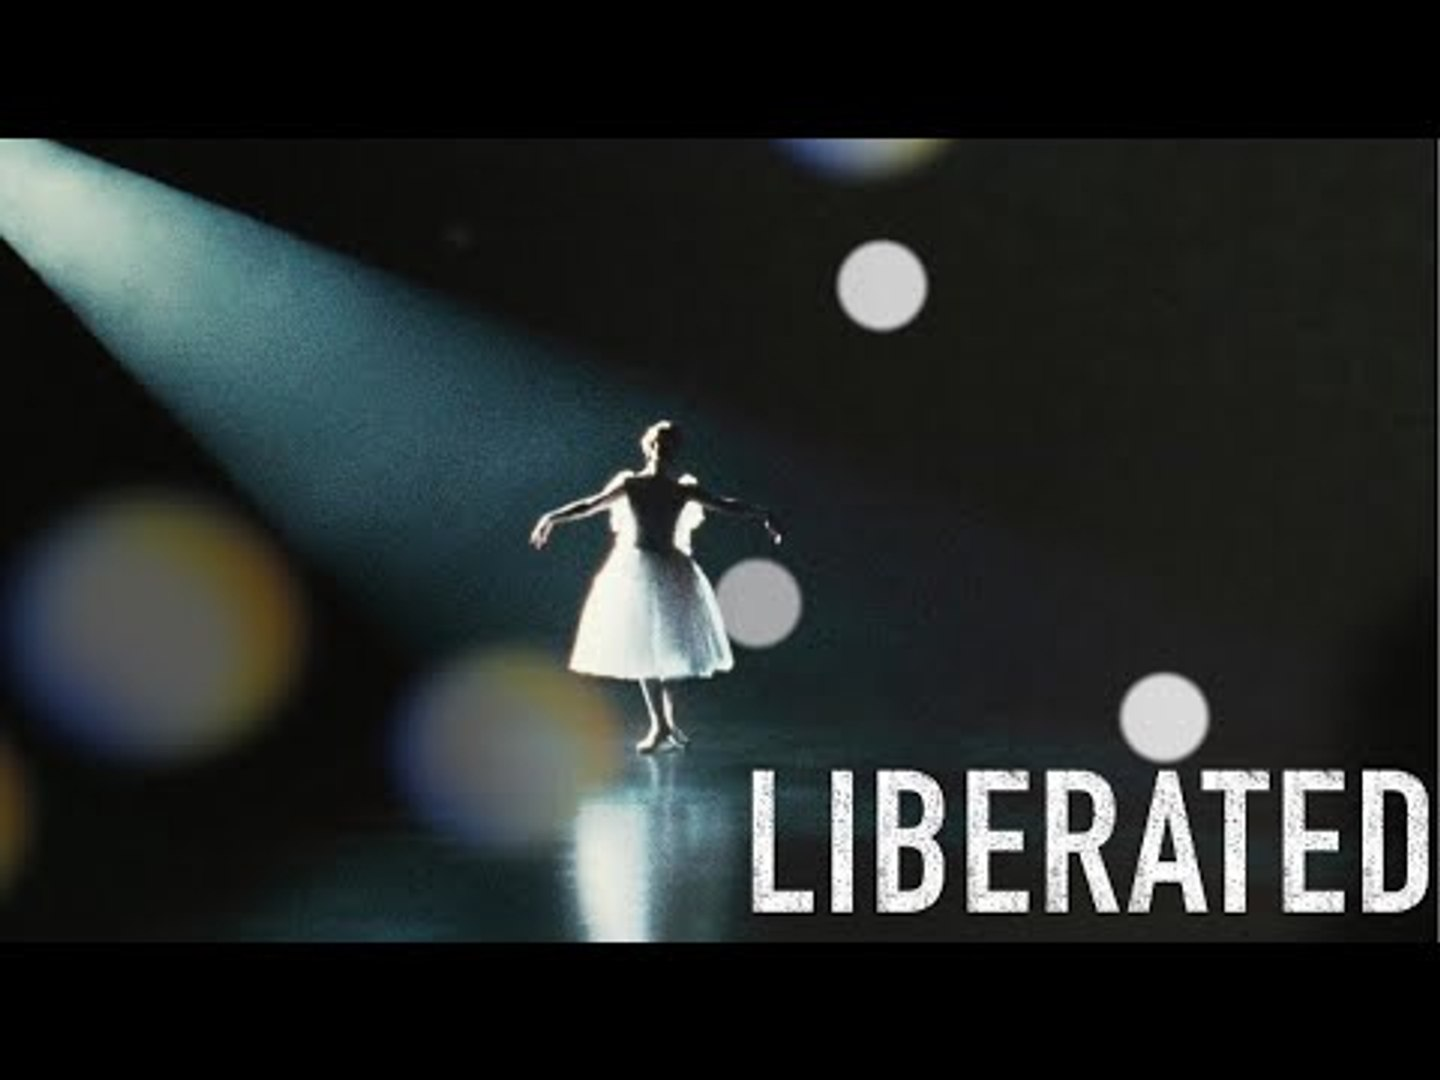 Liberated - Motivational Video